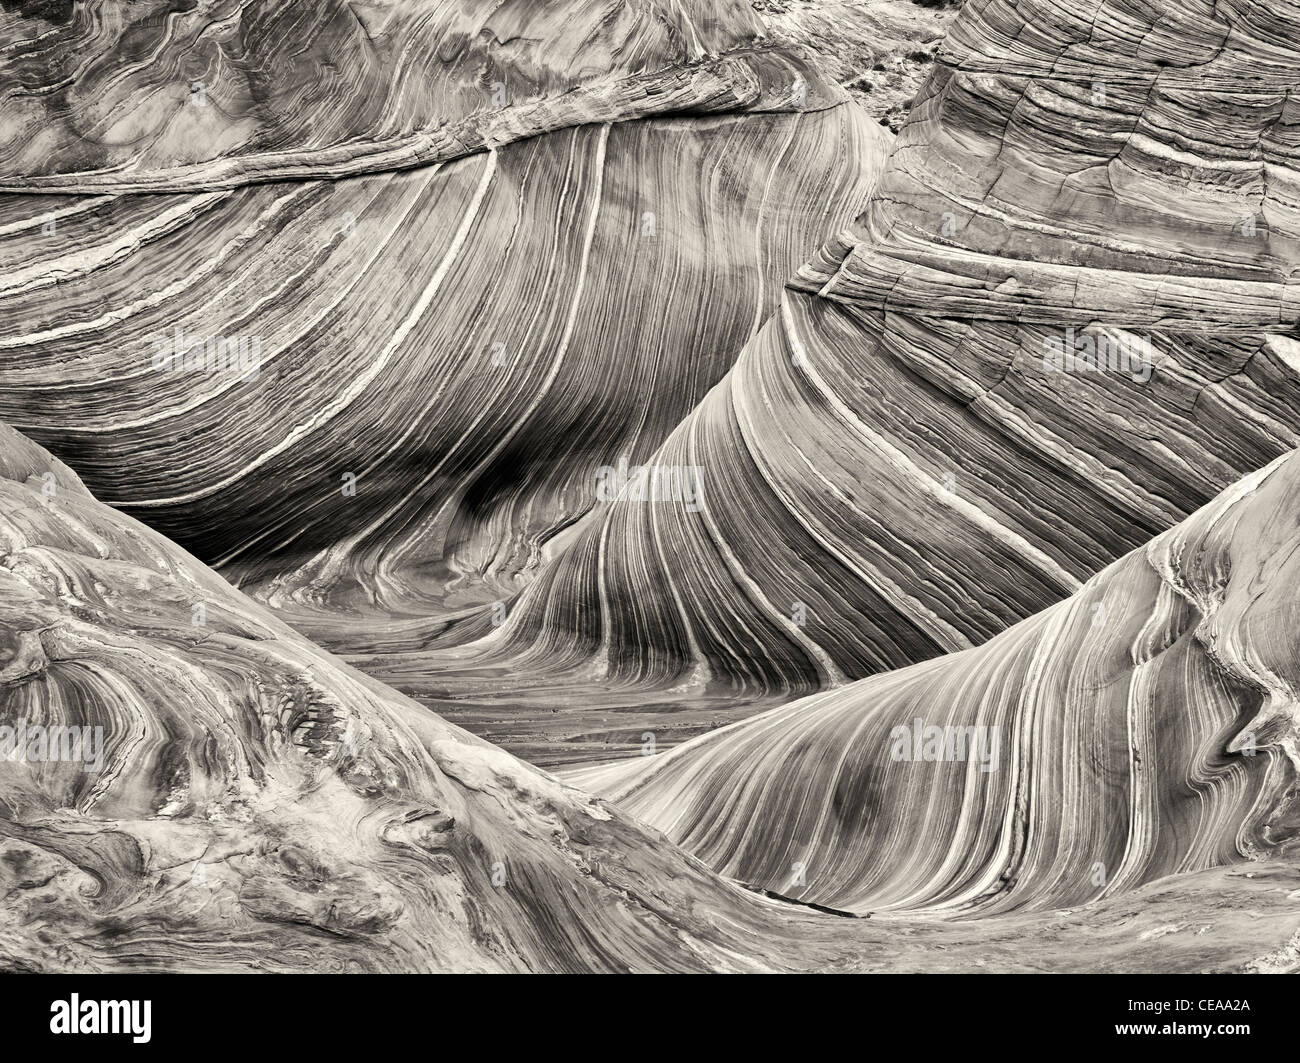 Sandtone formation in North Coyote Buttes, The Wave. Paria Canyon Vermillion Cliffs Wilderness. Utah/Arizona - Stock Image